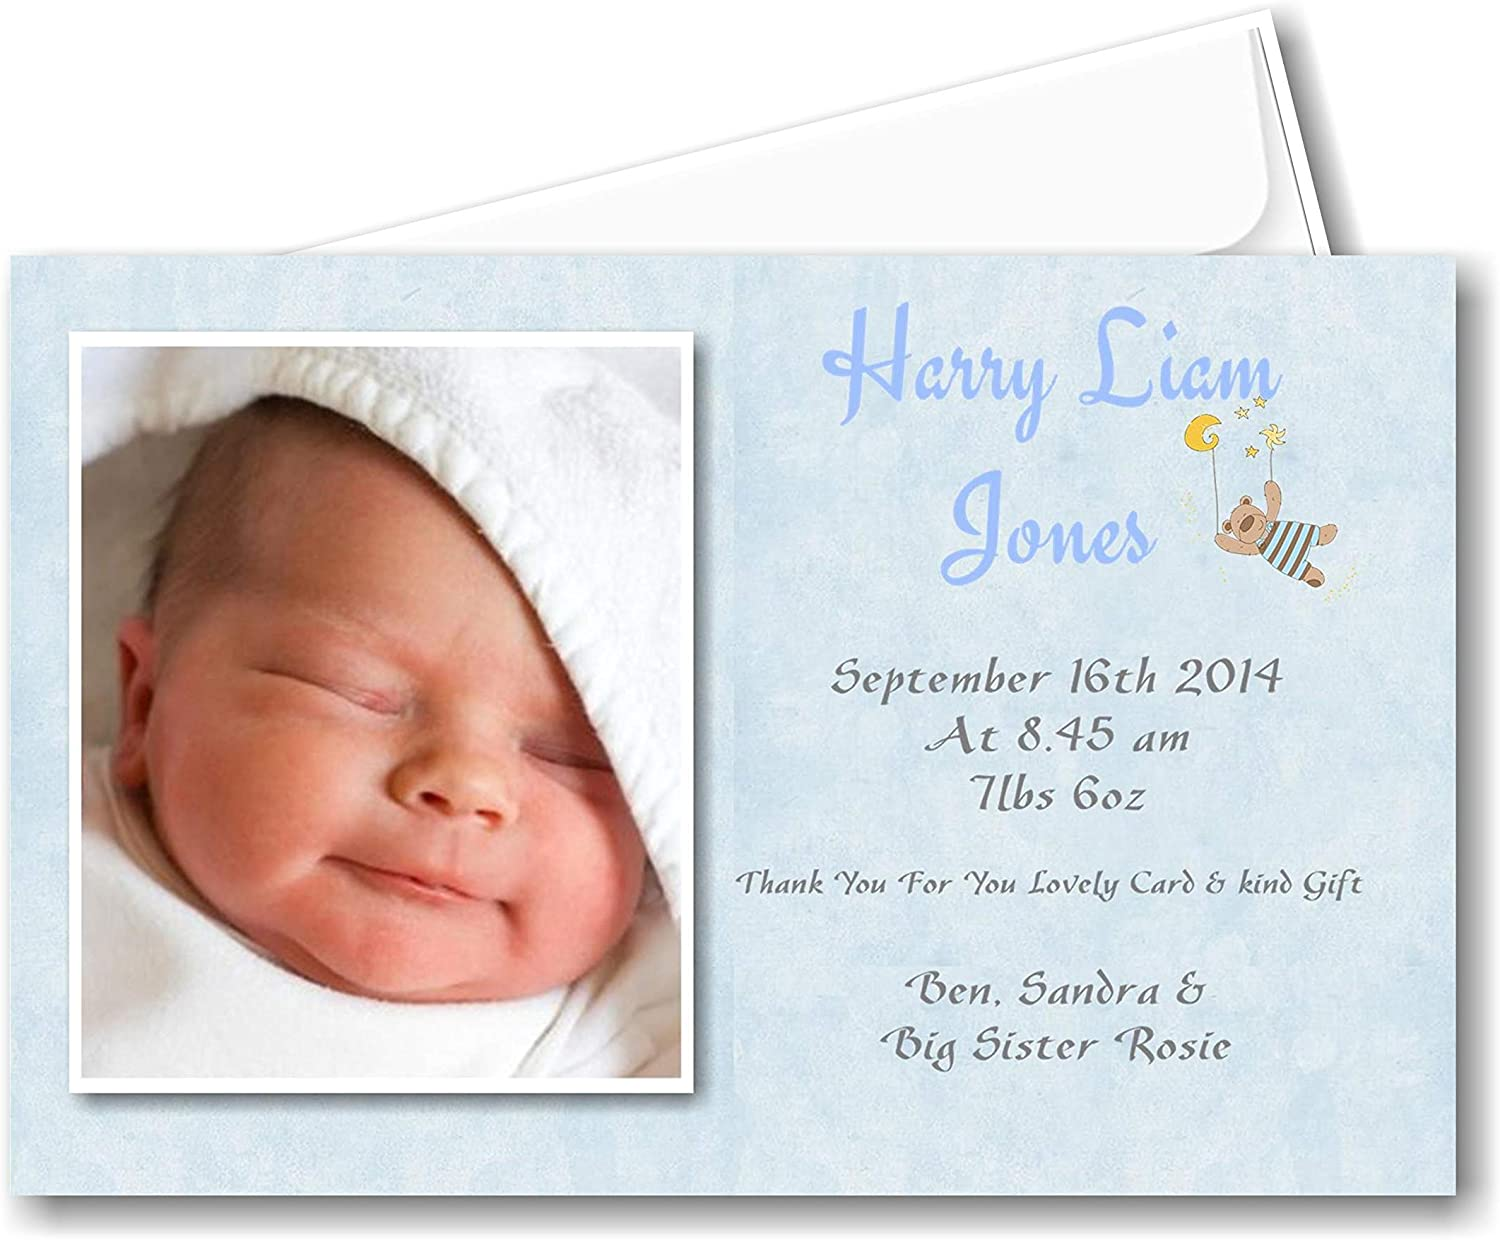 kid cards, personalized cards custom postcards personalized gift Customized Cards kid postcards 8 Personalized postcards